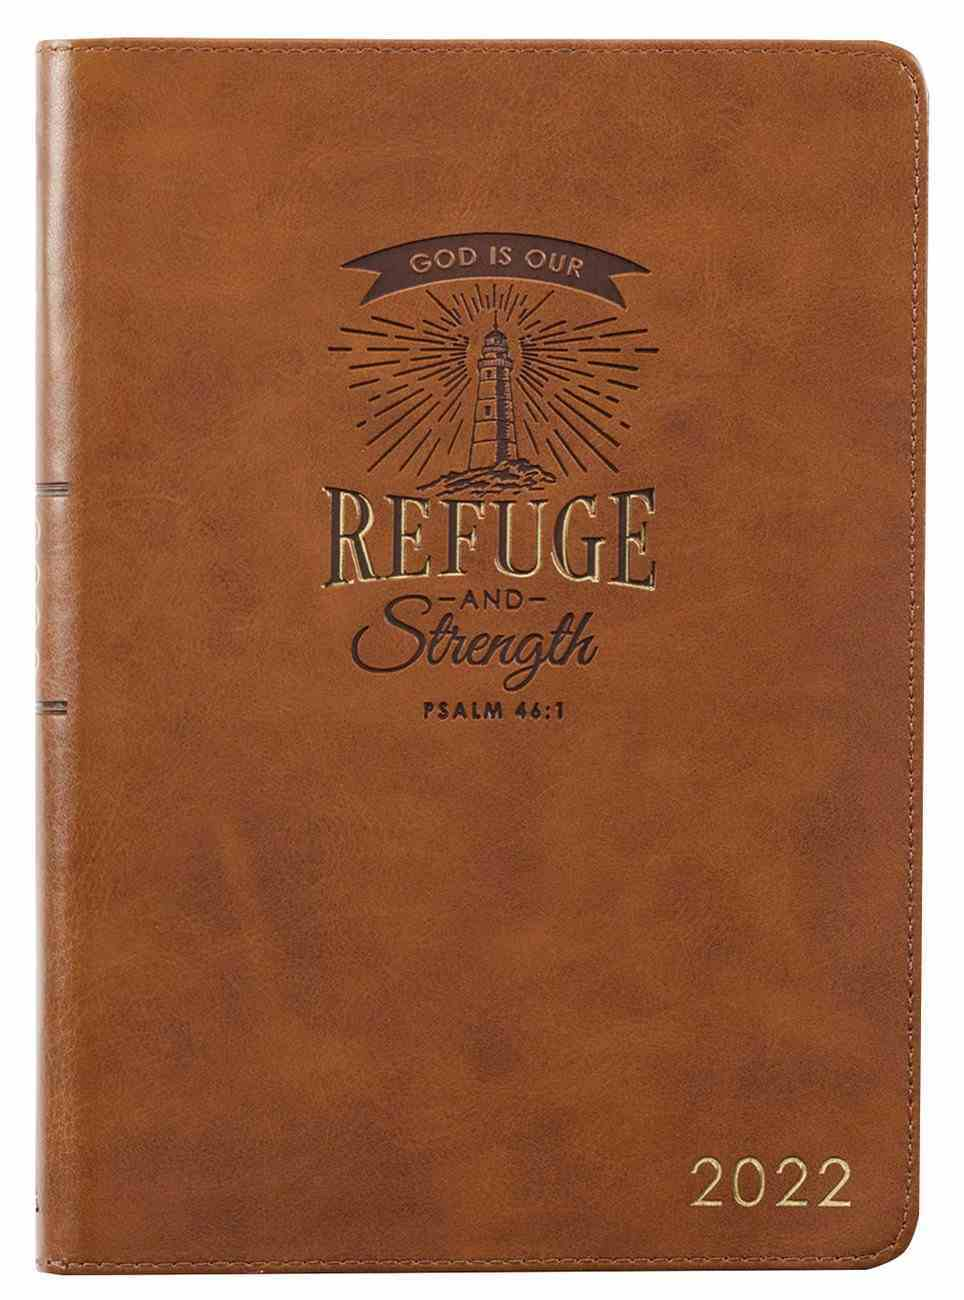 2022 12-Month Diary/Planner: God is Our Refuge and Strength Imitation Leather